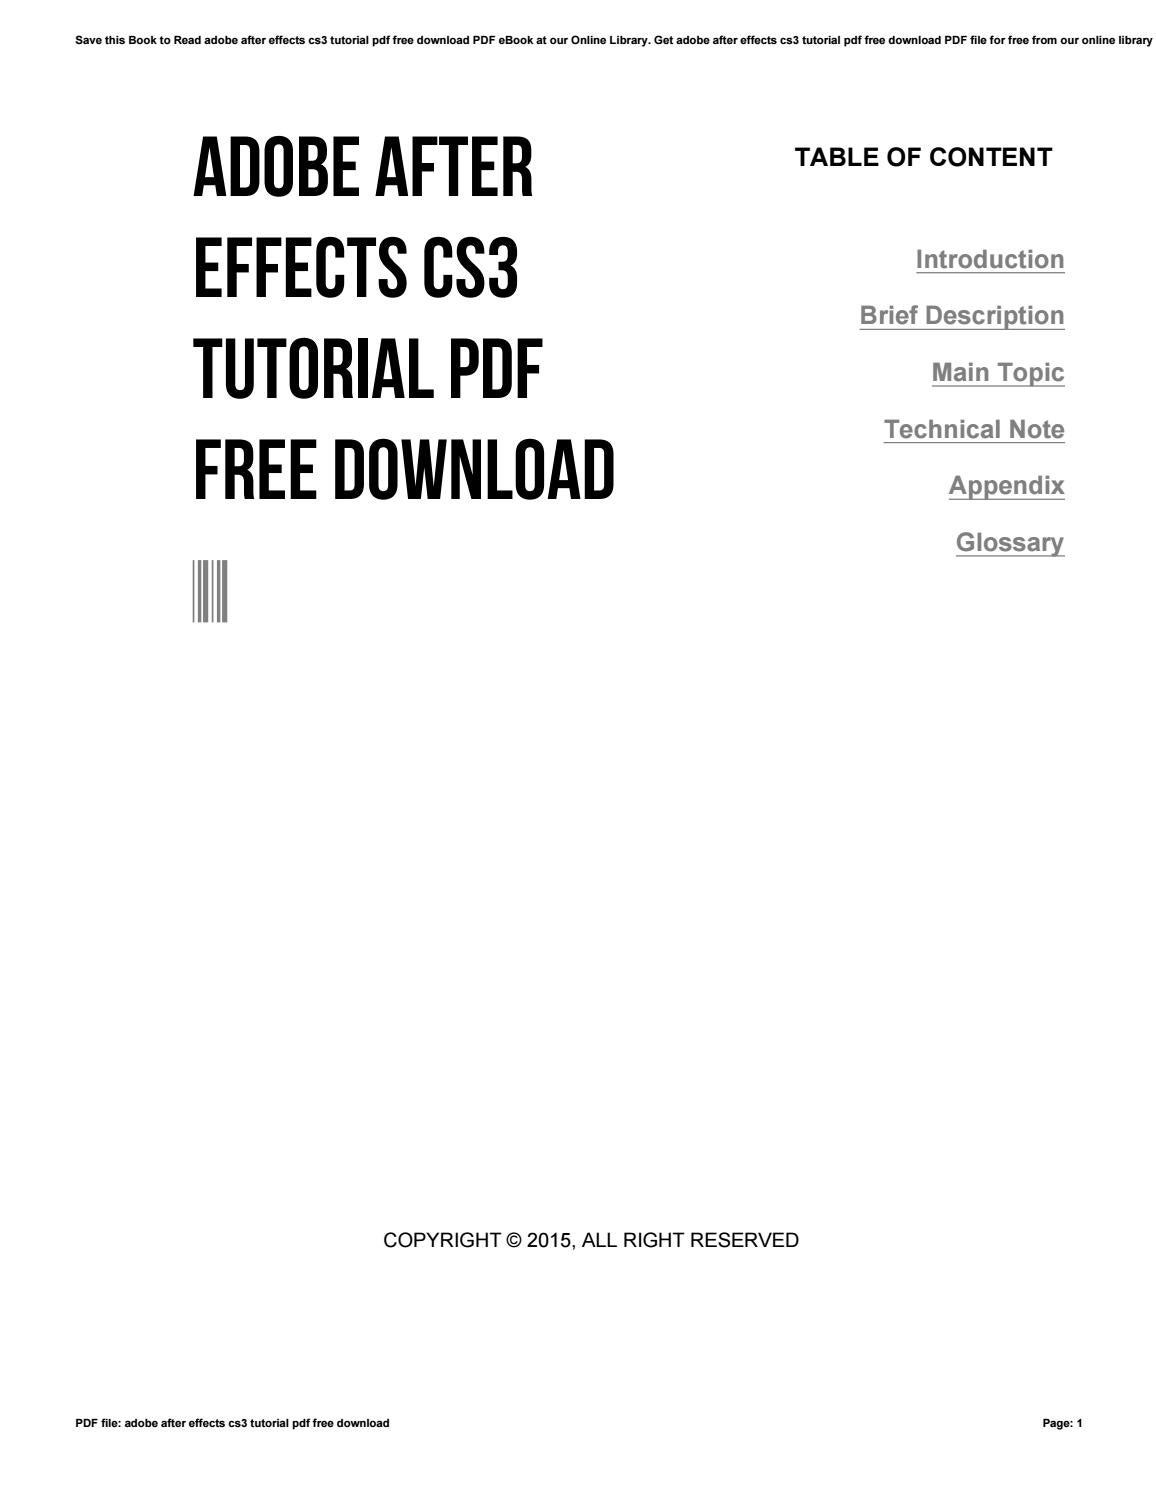 Adobe after effects cs3 tutorial pdf free download by